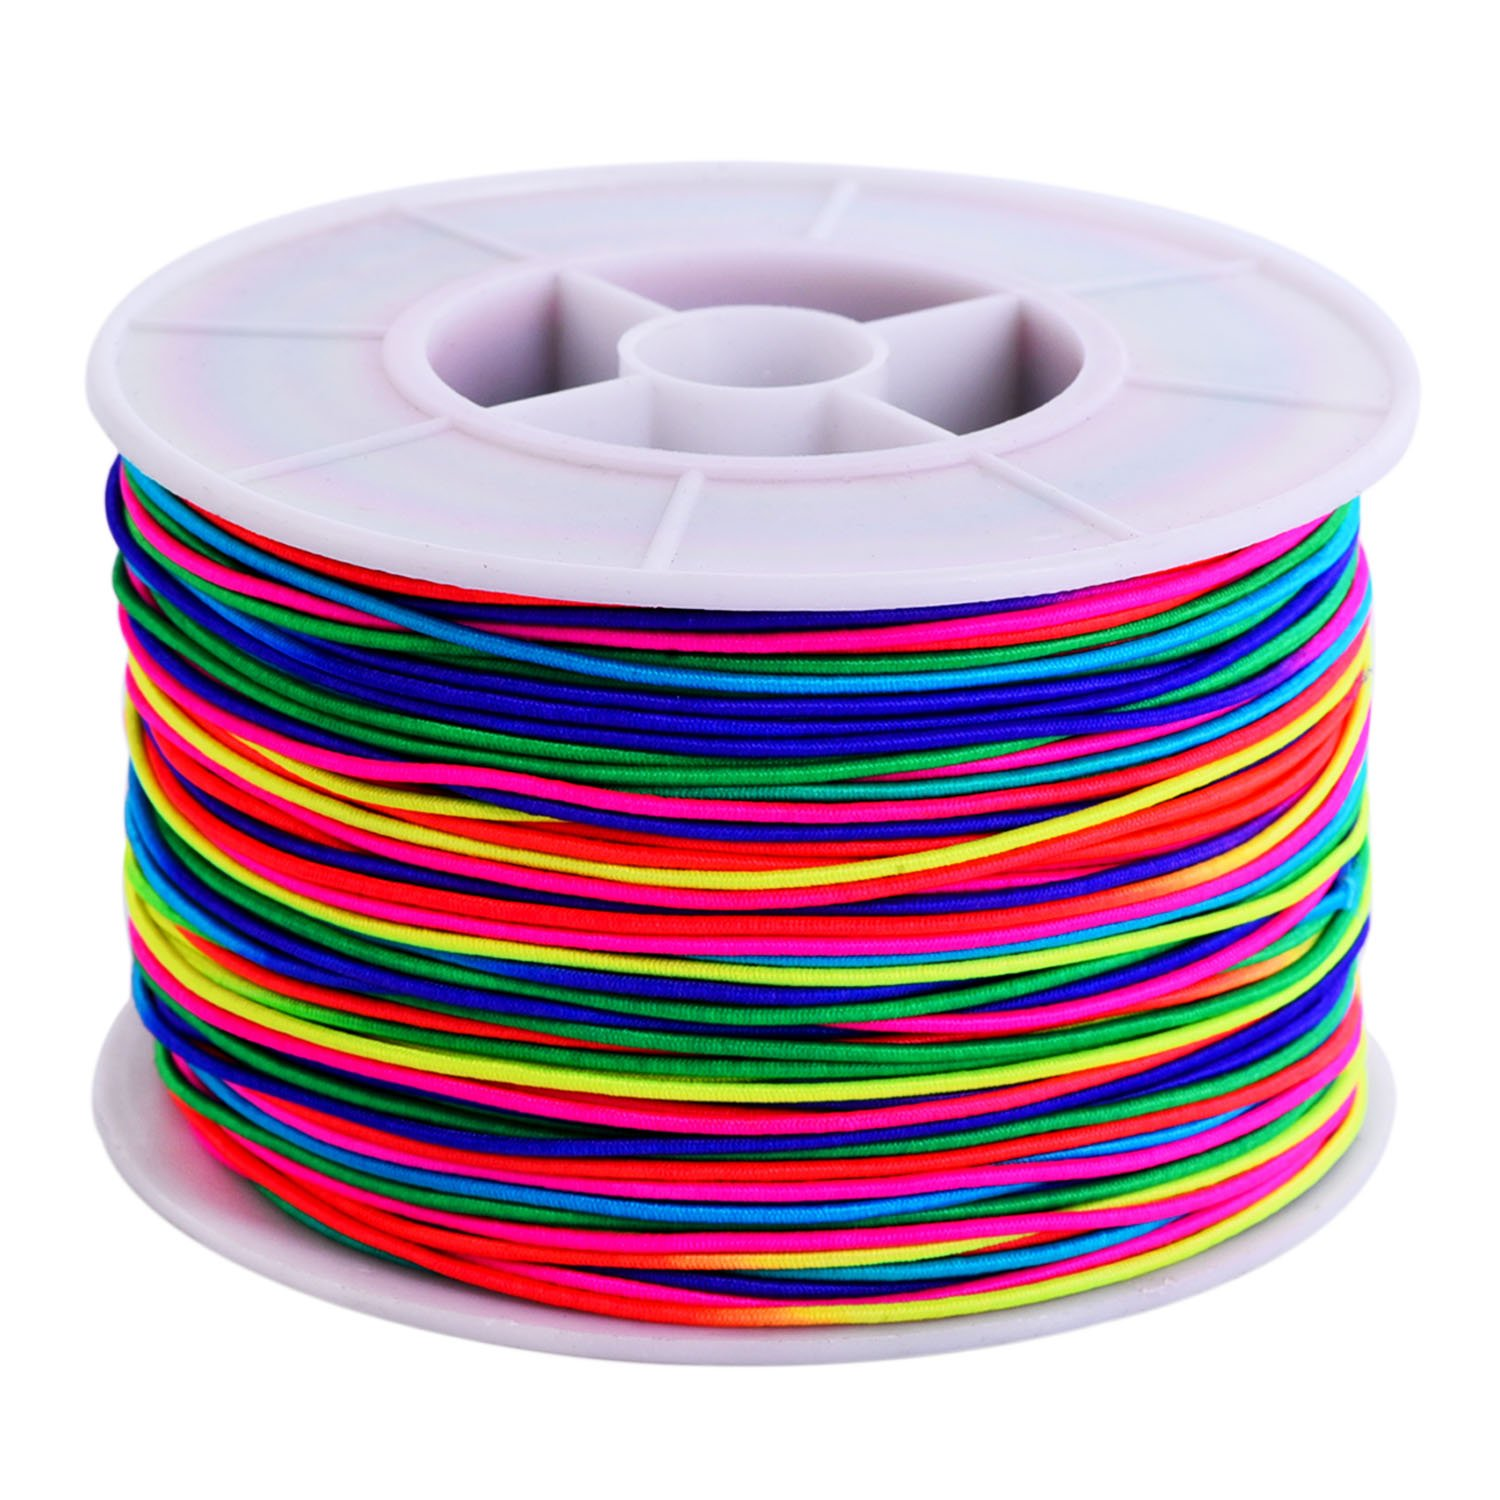 100 m Elastic Cord Beading Thread Stretch Bead String Fabric Craft Cord, 1 mm, Multicolor Outus